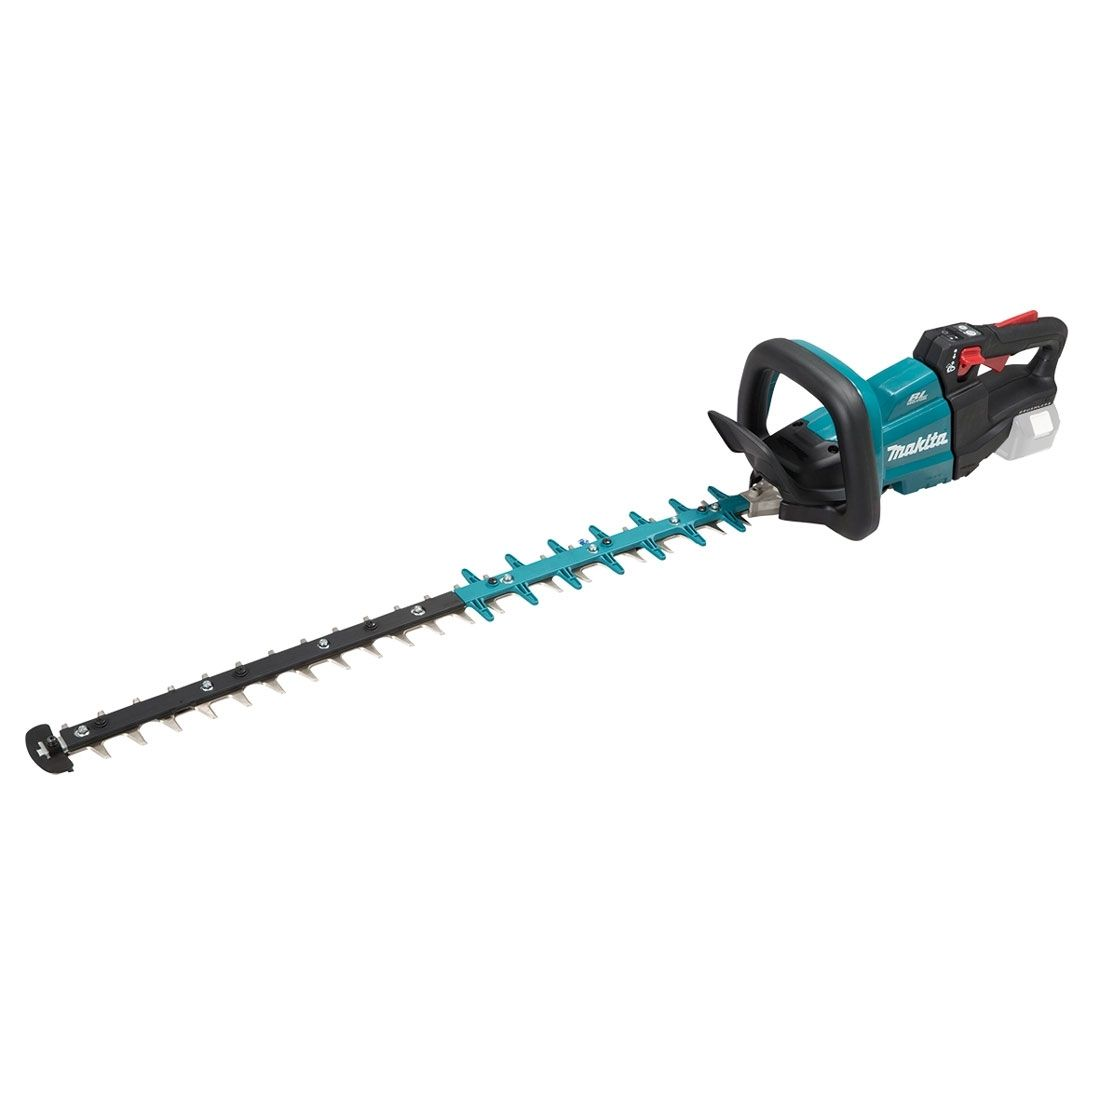 Makita 18v Brushless Hedge Trimmer 75cm Body MAKDUH751Z   The cordless Makita DUH750 is a Brushless hedge trimmer which is powered by a single 18 volt LXT battery.   toolforce.ie